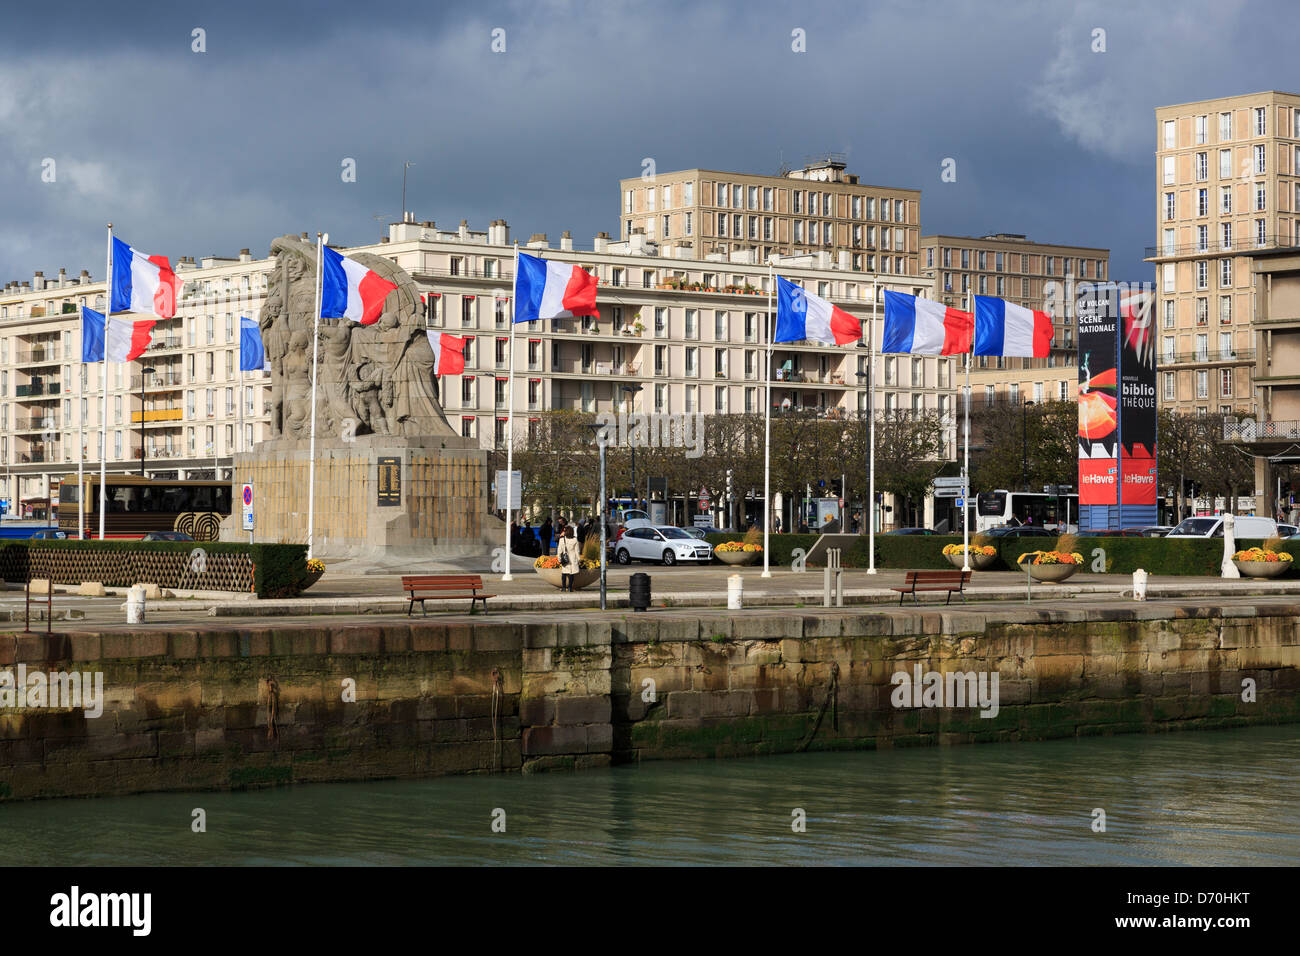 Commerce Basin,Le Havre,Normandy,France,Europe - Stock Image